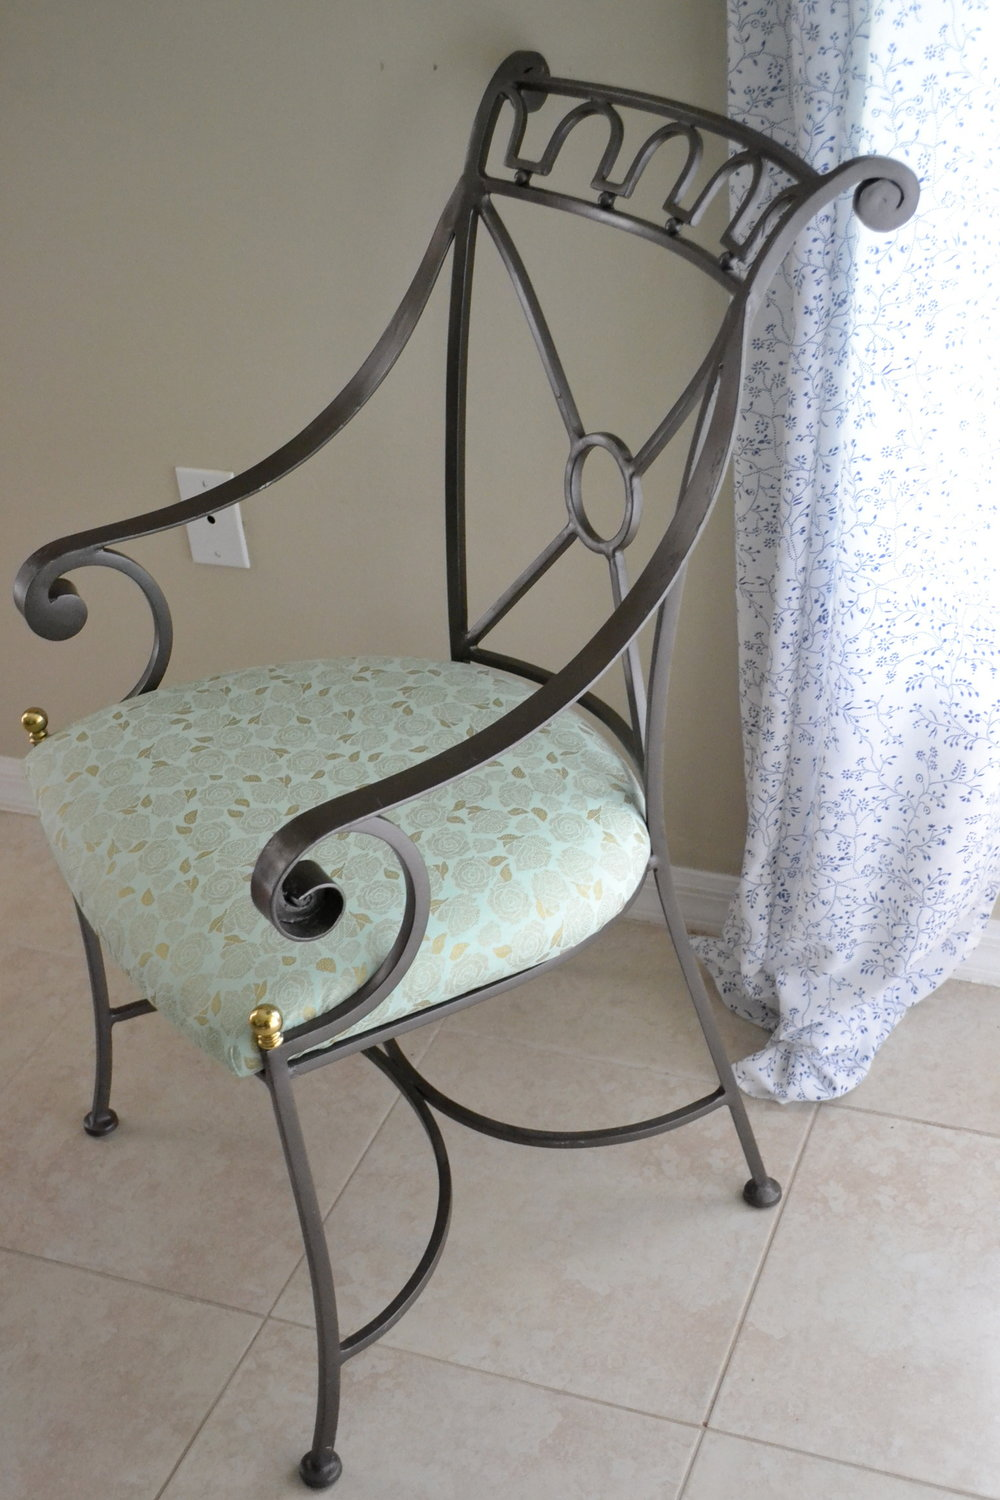 chair after side view